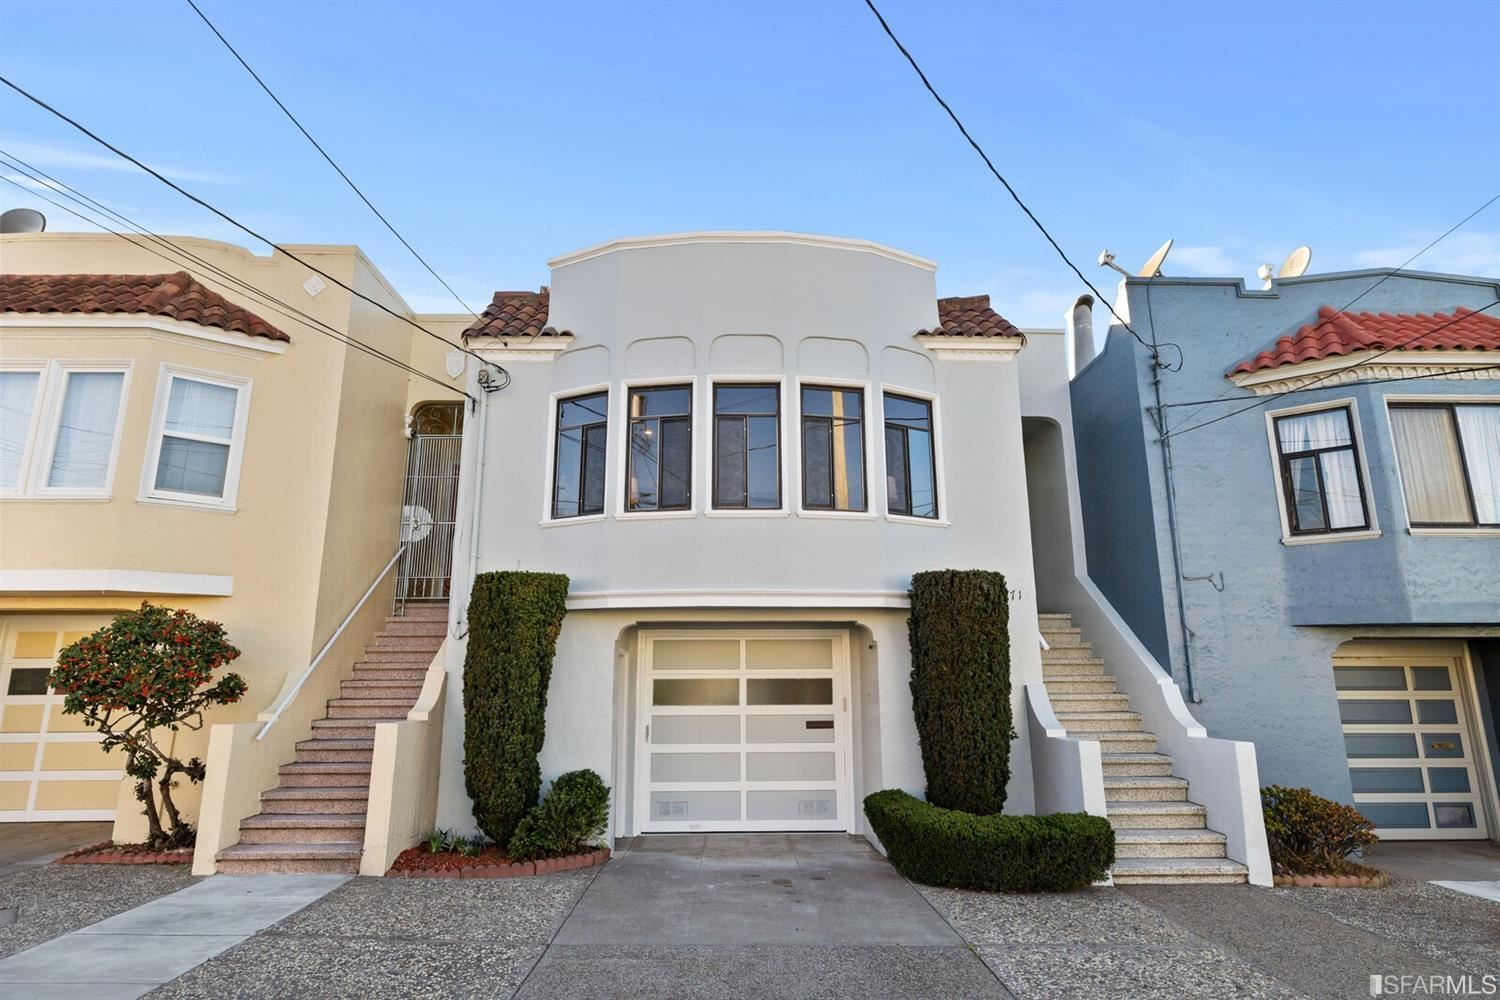 1371 40th Avenue, San Francisco, CA 94122 - #: 509214